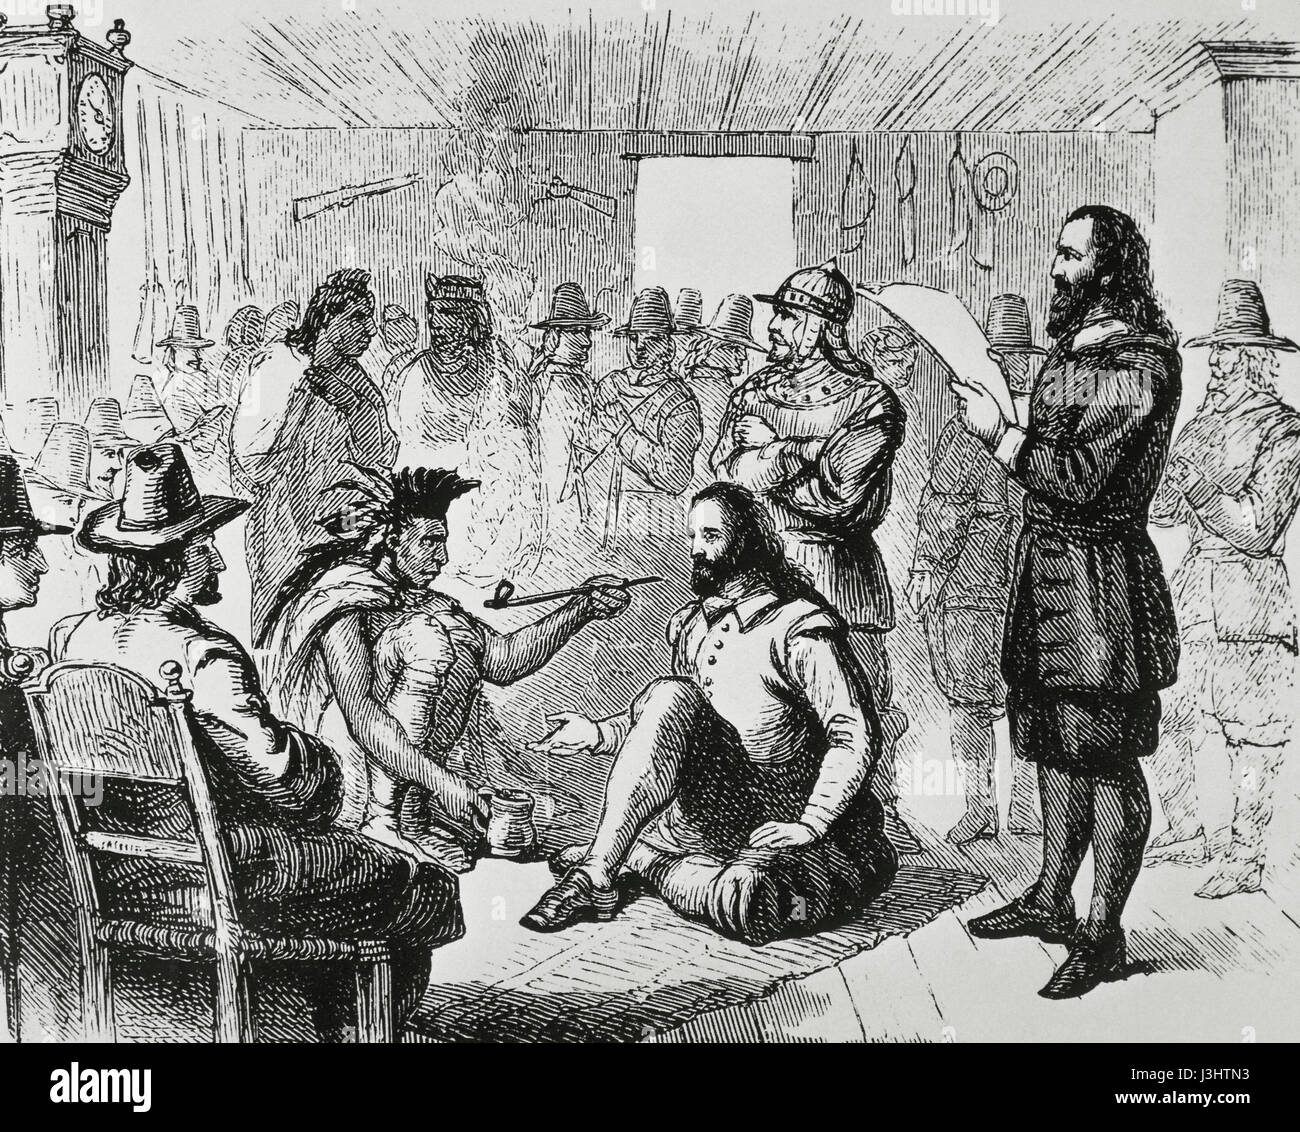 1581-1661), sachem of the Wampanoags, smoking a ceremonial pipe with the  Plymouth Colony Governor, John Carver (before 1584-1621). Plymouth 1621.  Engraving.